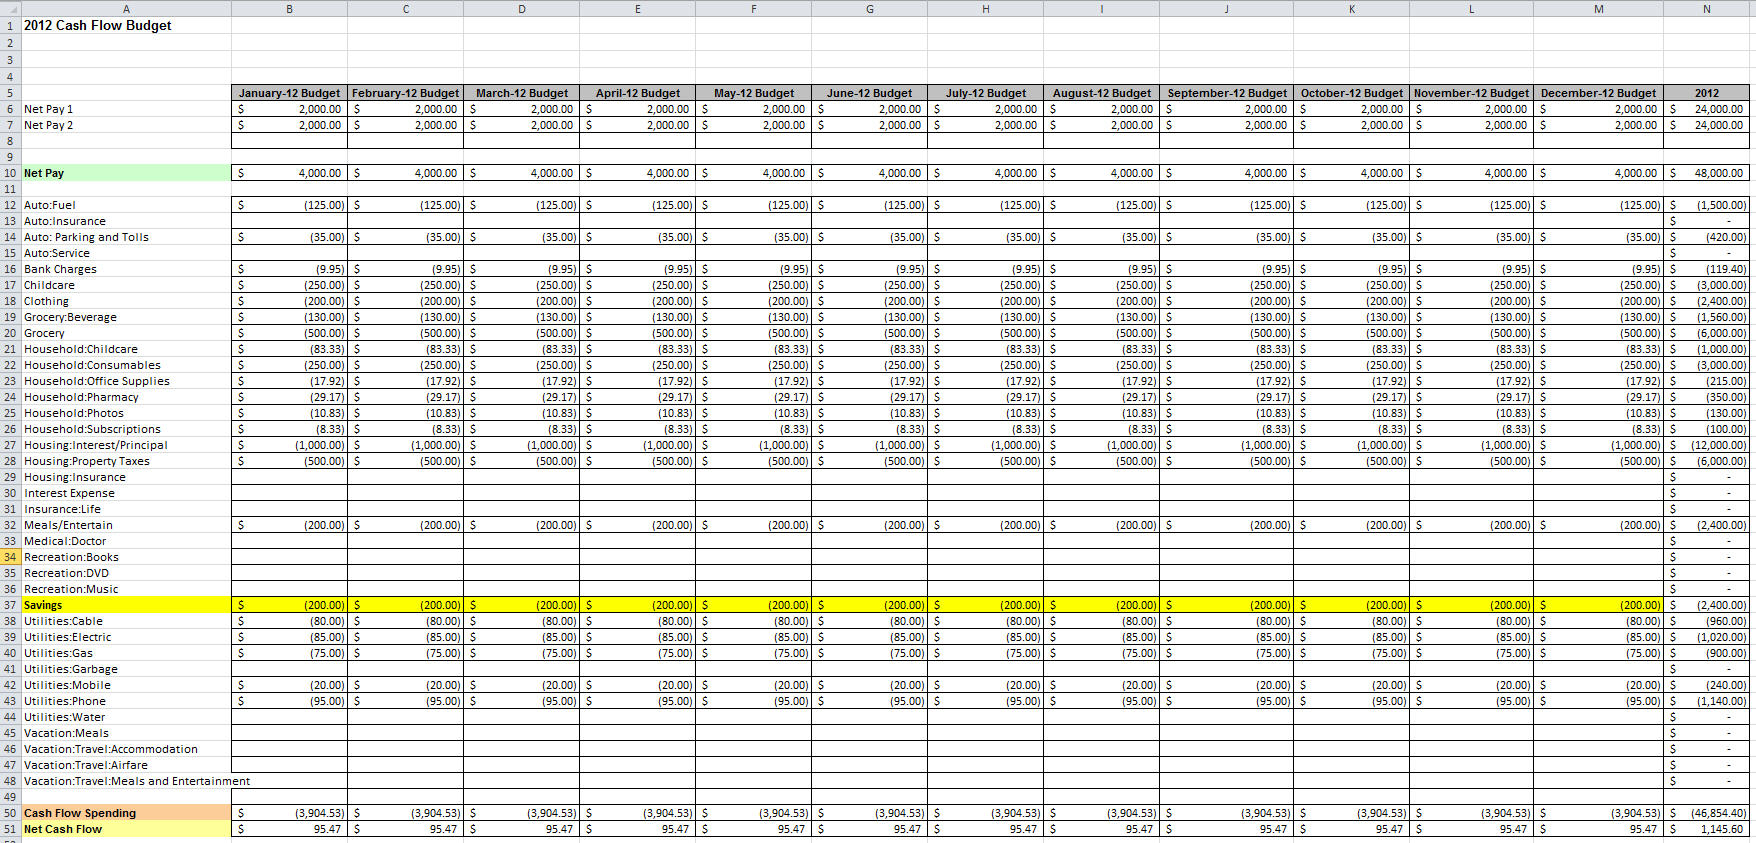 Cash Flow Budget Spreadsheet